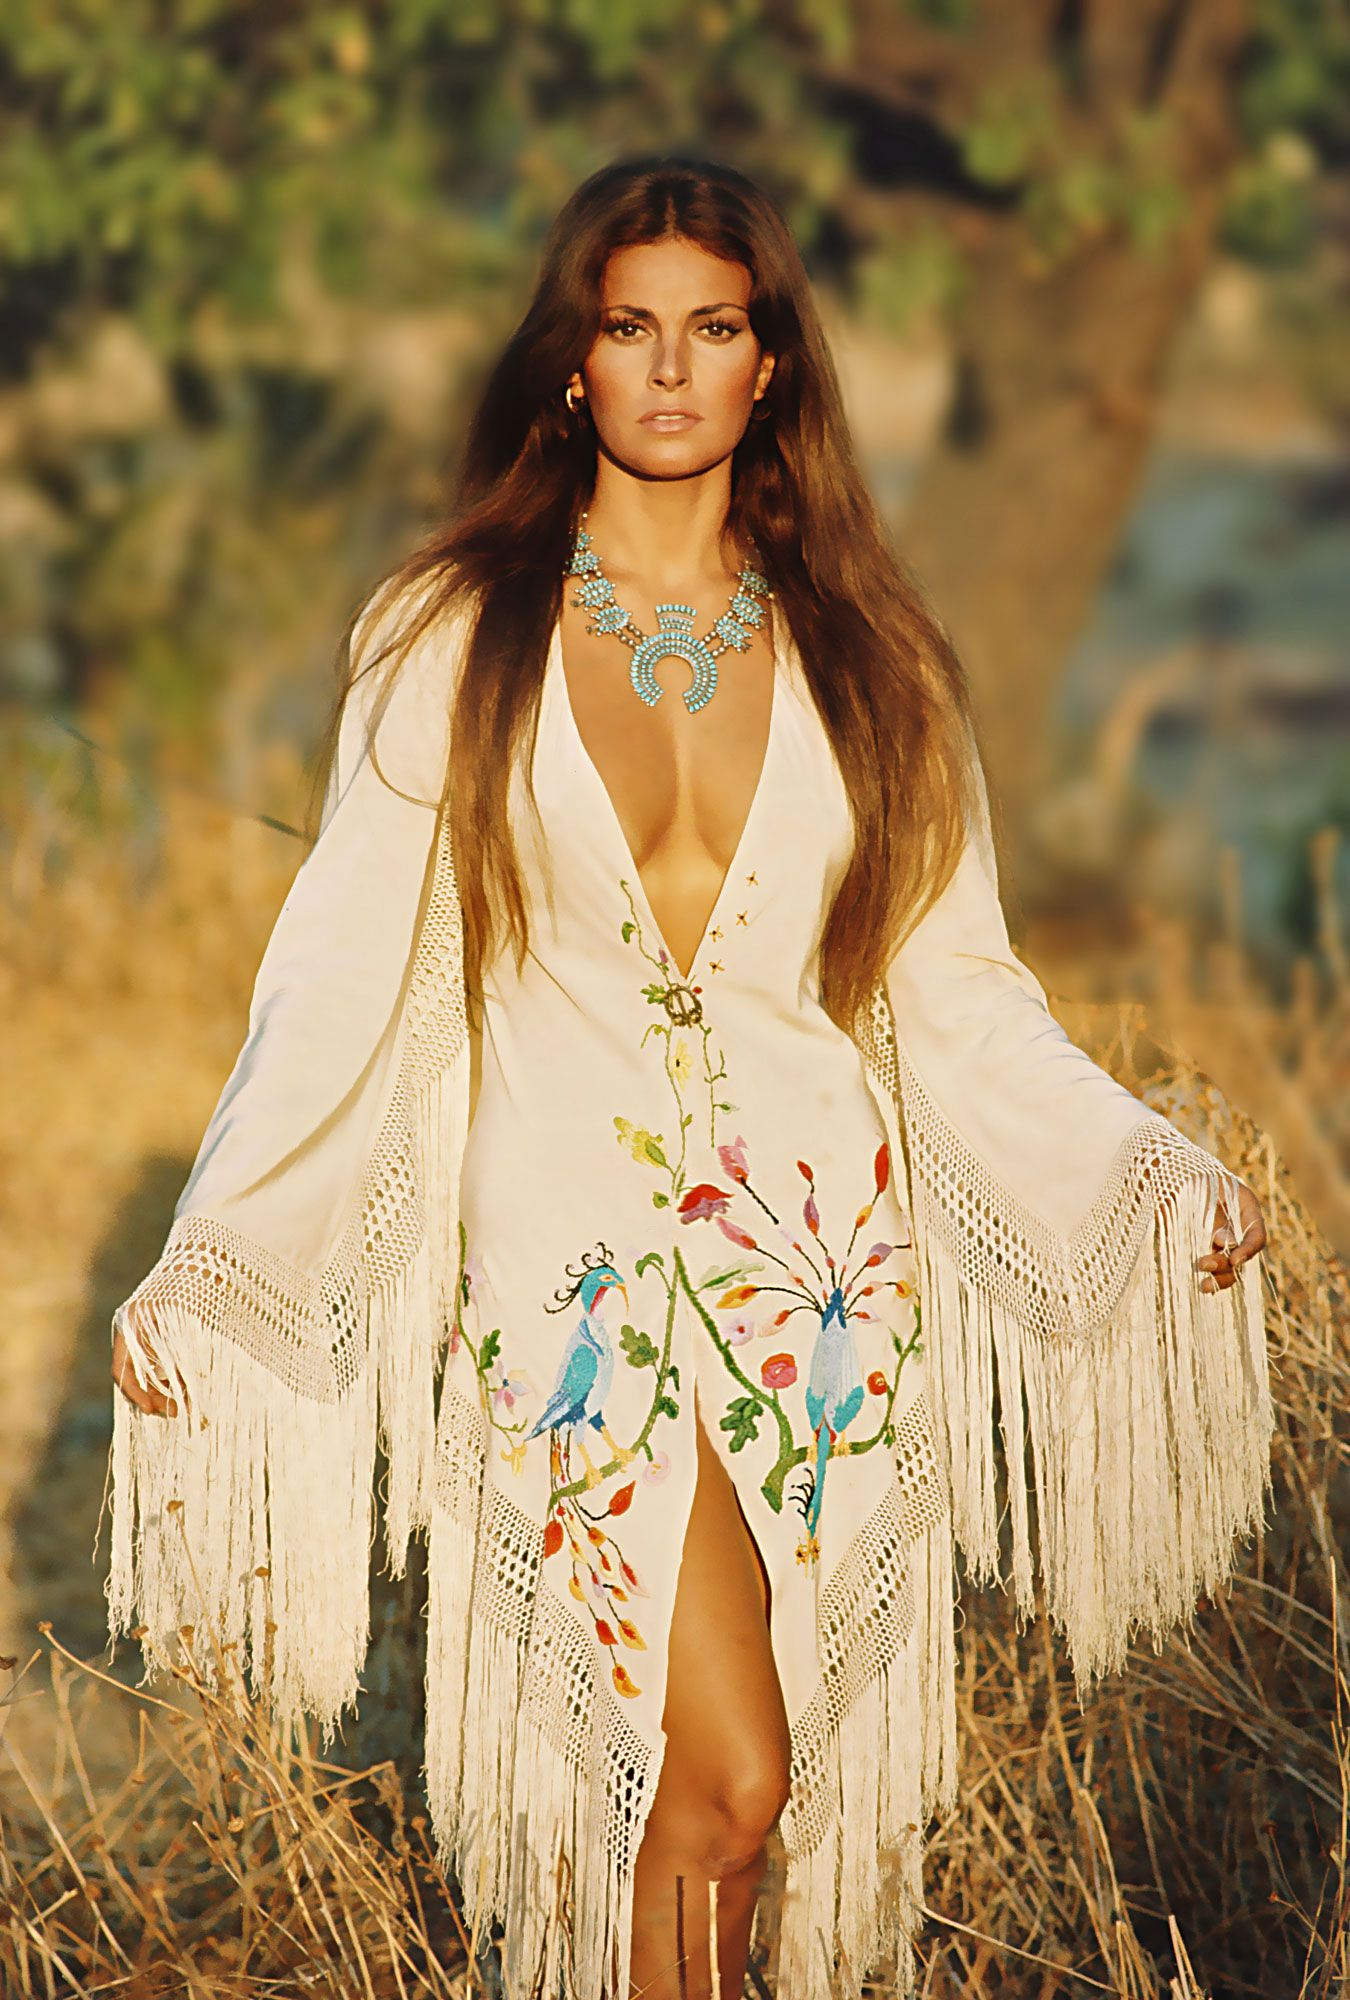 Raquel Welch Famous People Pinterest Boho Hippie 1970s Hippie Fashion And Hippie Fashion